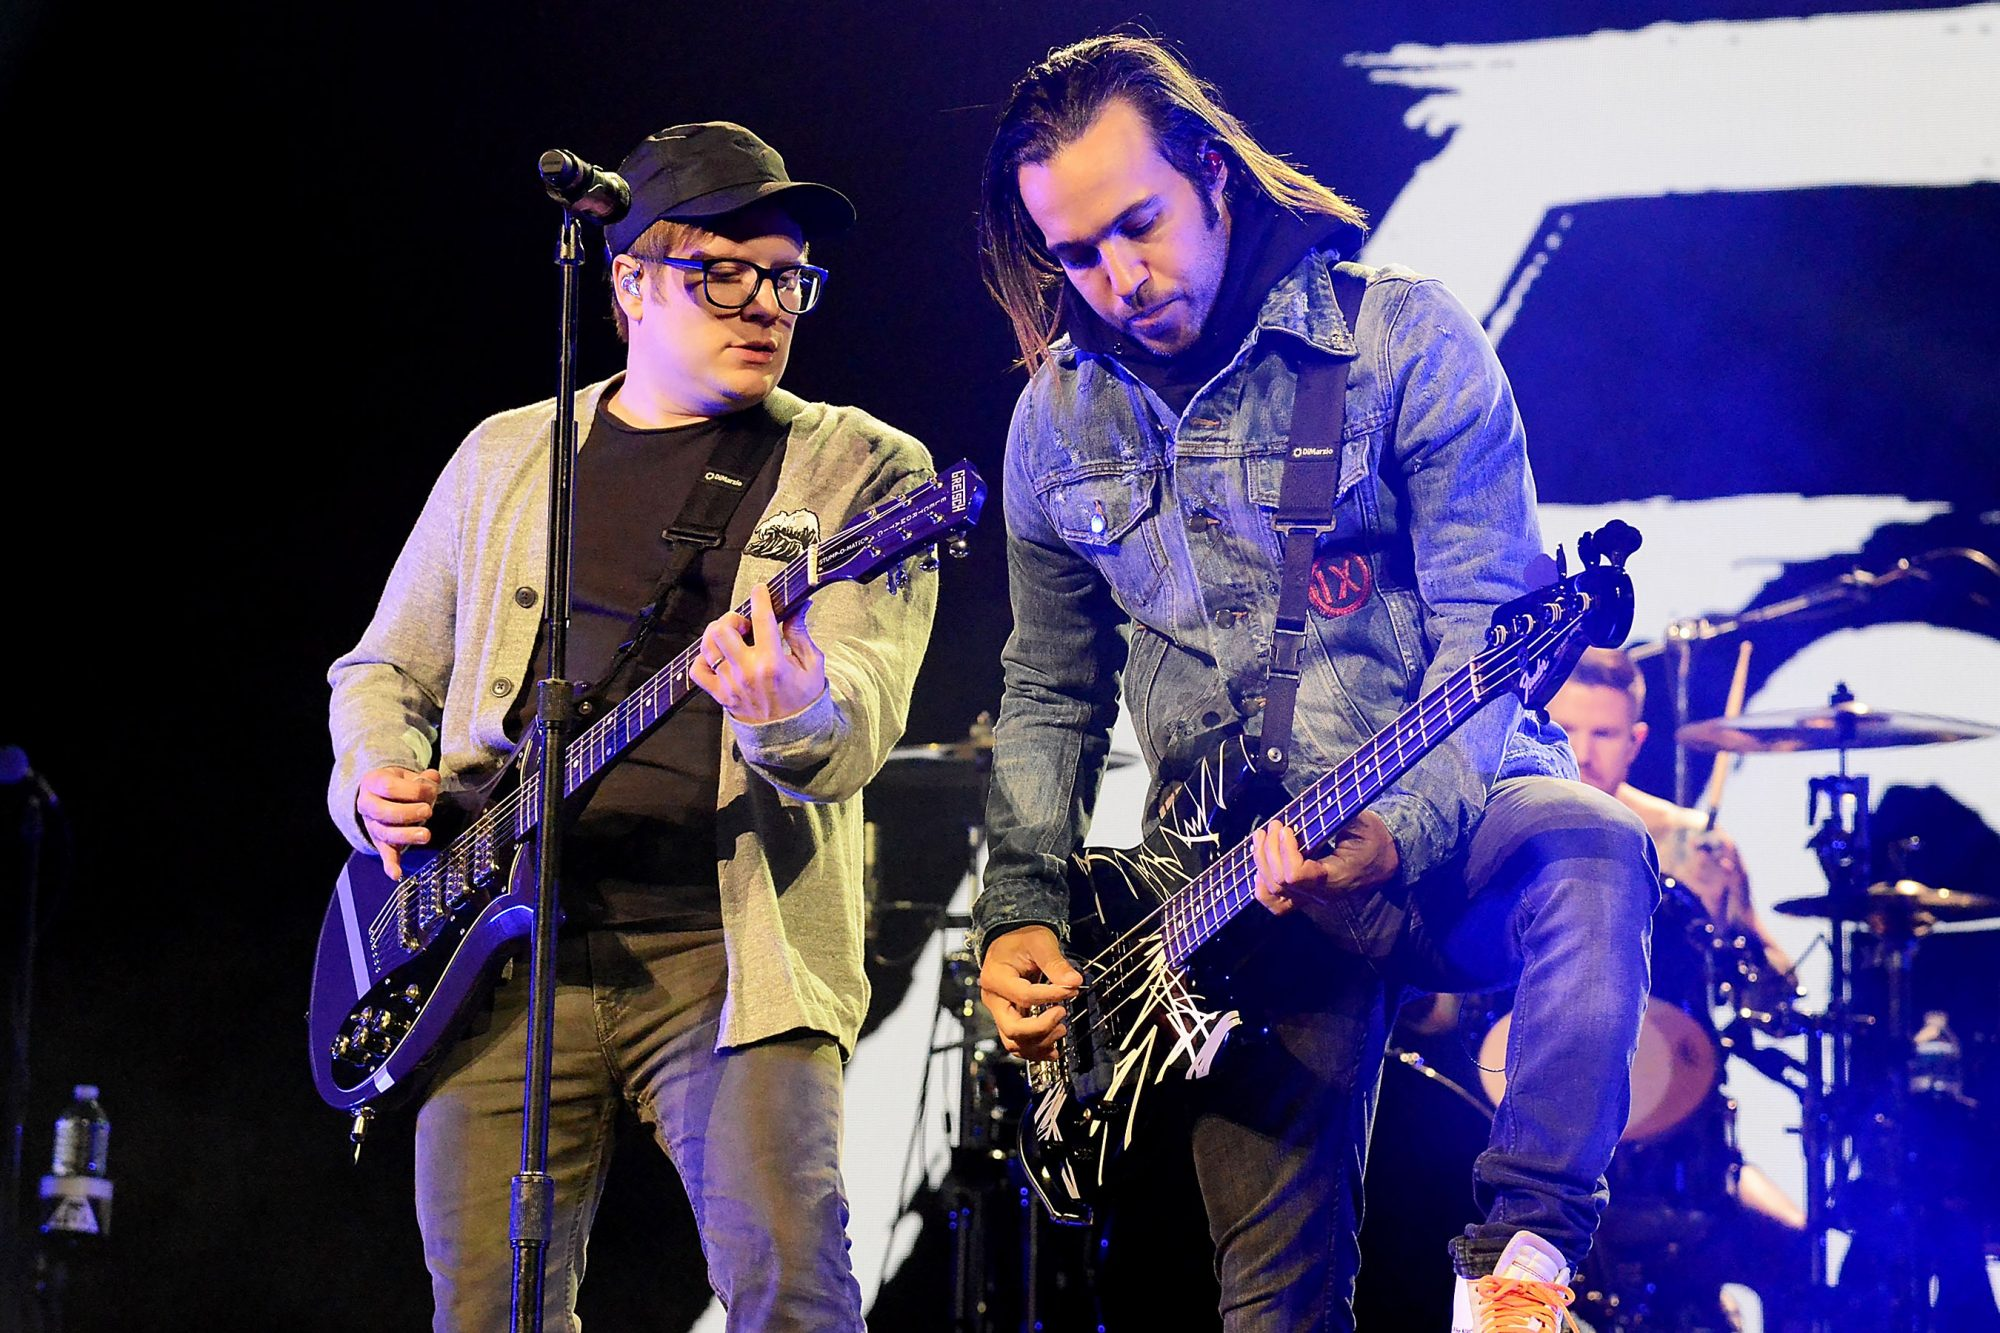 Fall Out Boy & Machine Gun Kelly In Concert - Uniondale, NY